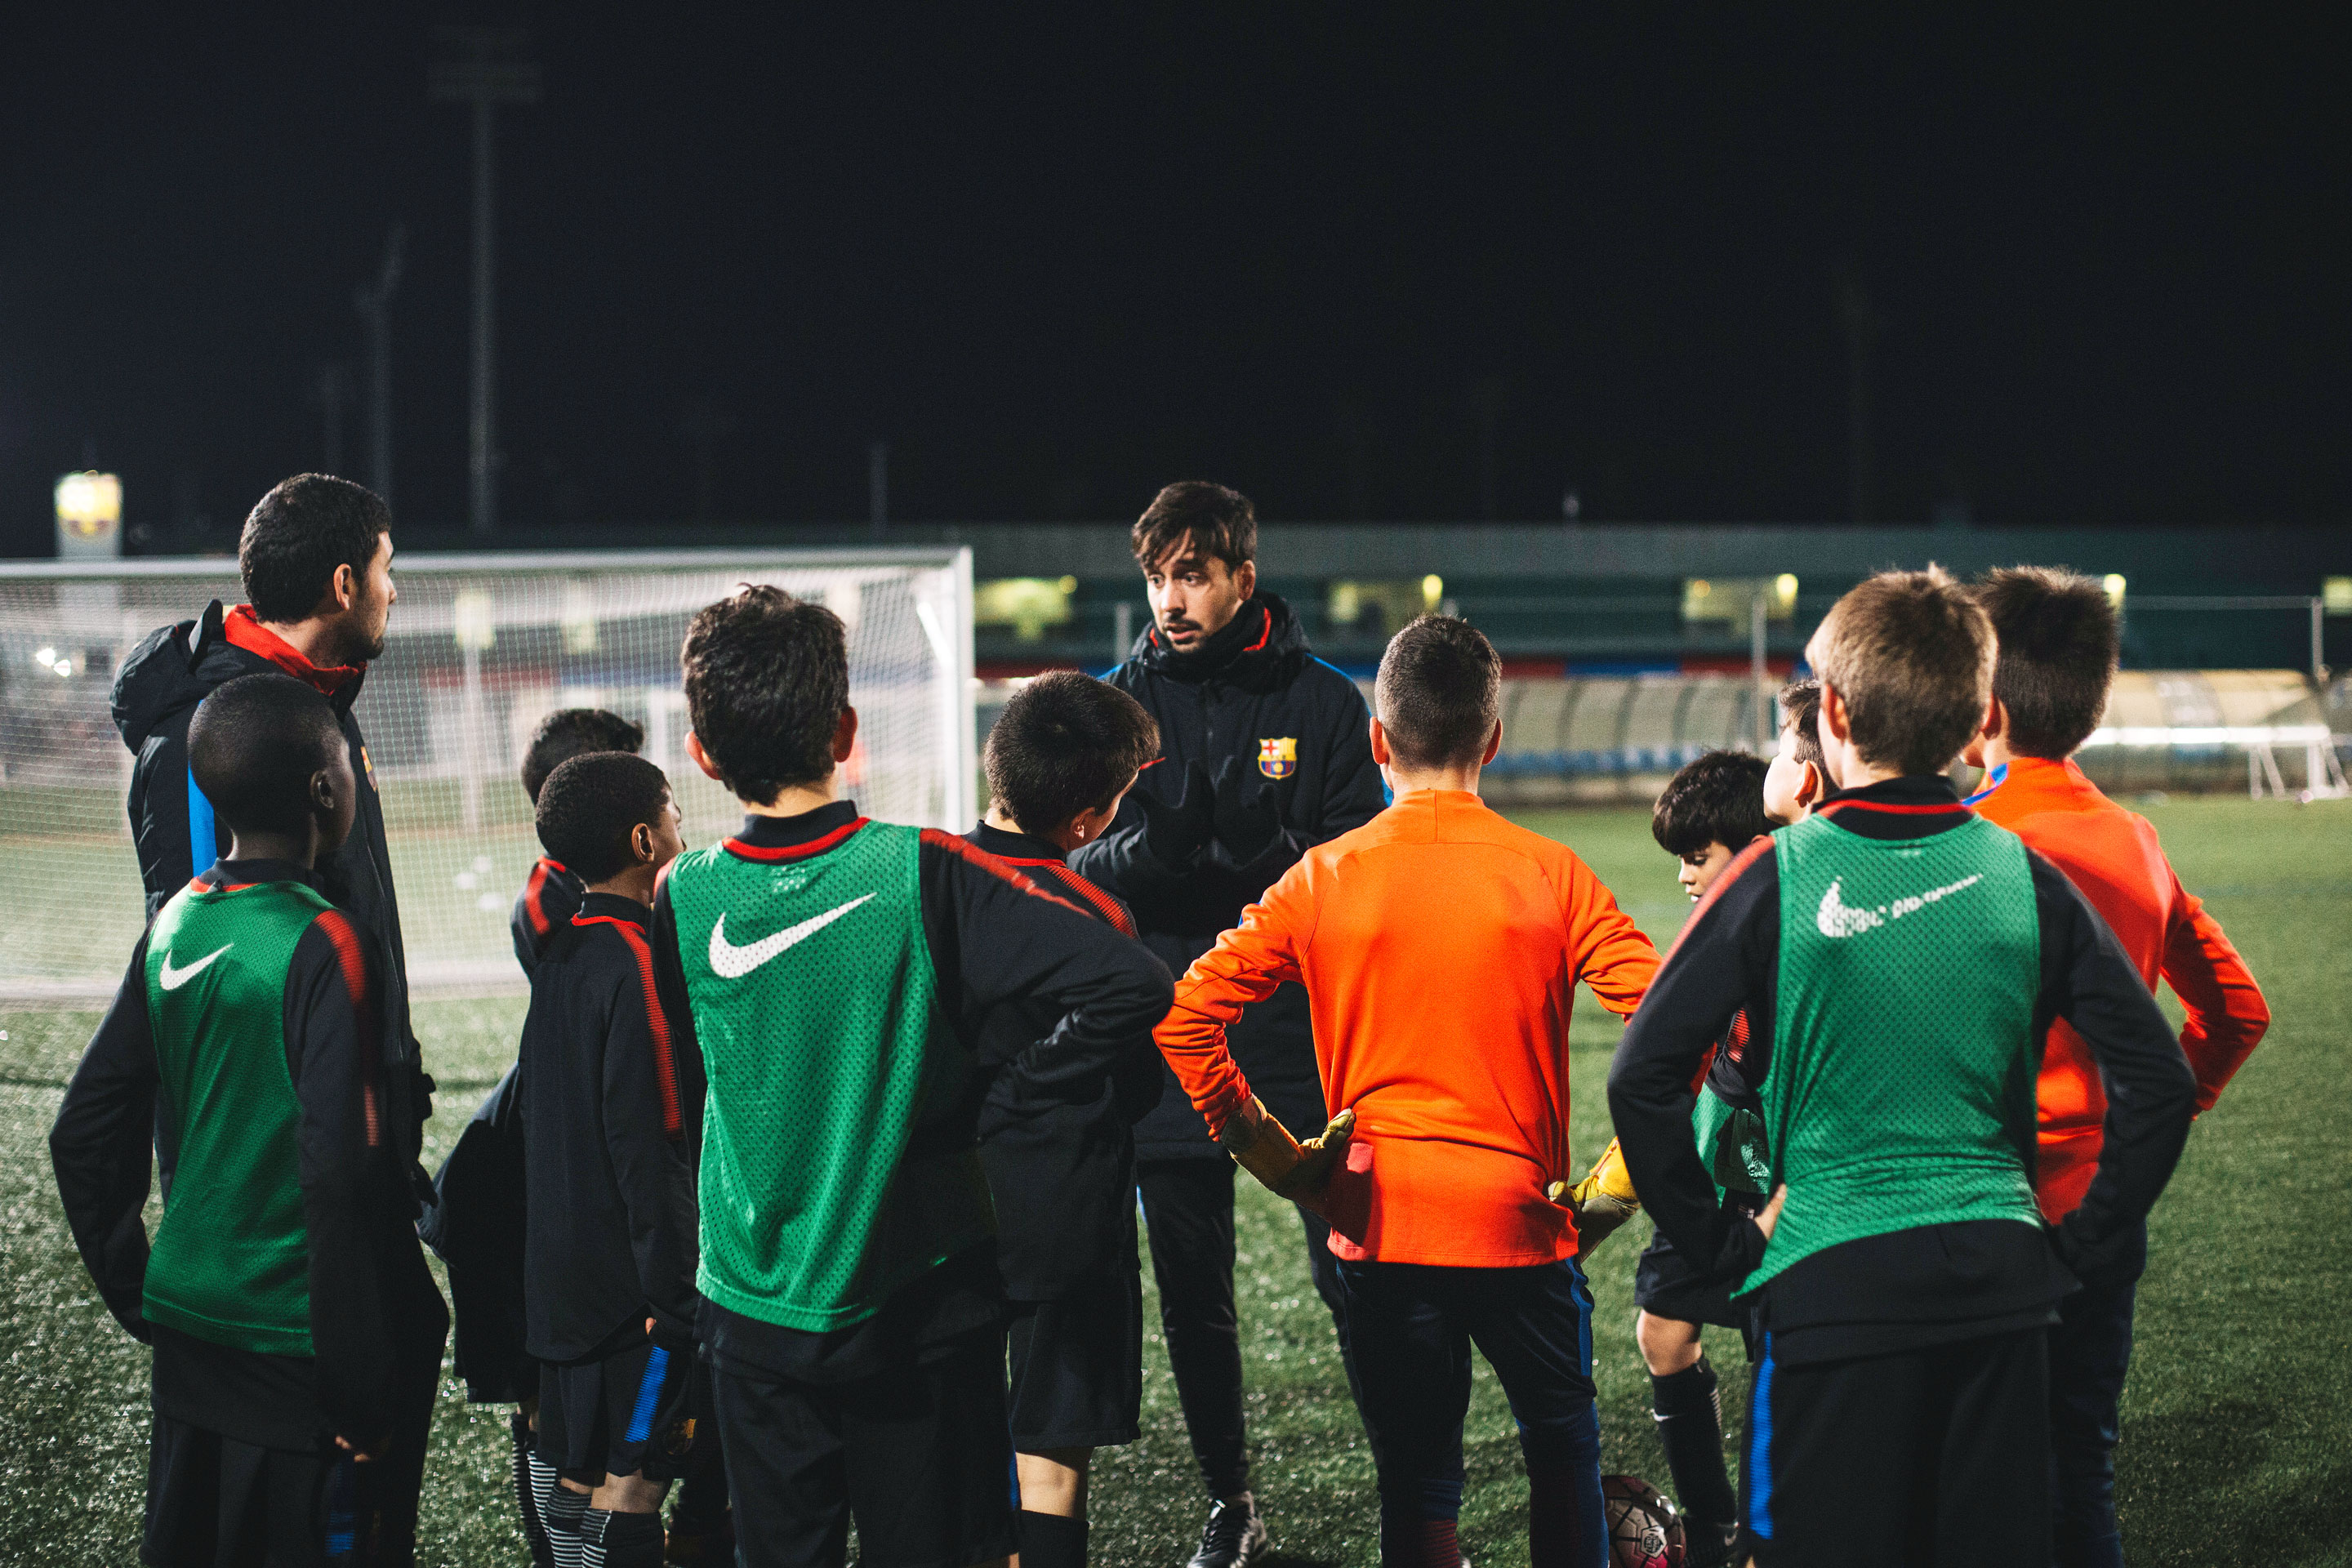 91d1a7a5b Aspiring football stars at La Masia, FC Barcelona's famed training  academy.Photograph by Javier Luengo for Fortune